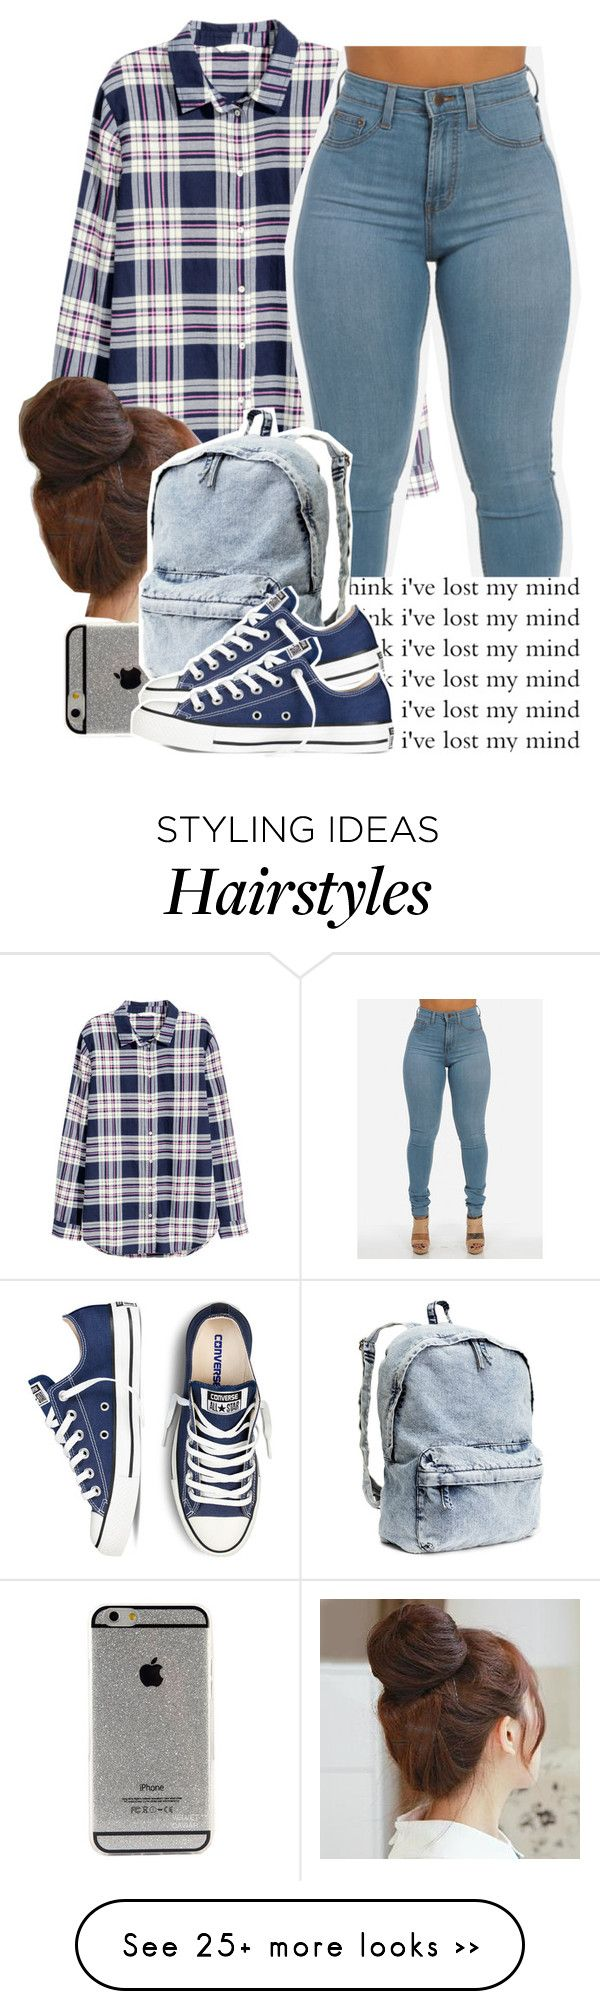 """No7 lateposting ha"" by kkcfashion on Polyvore featuring H&M and Pin Show"